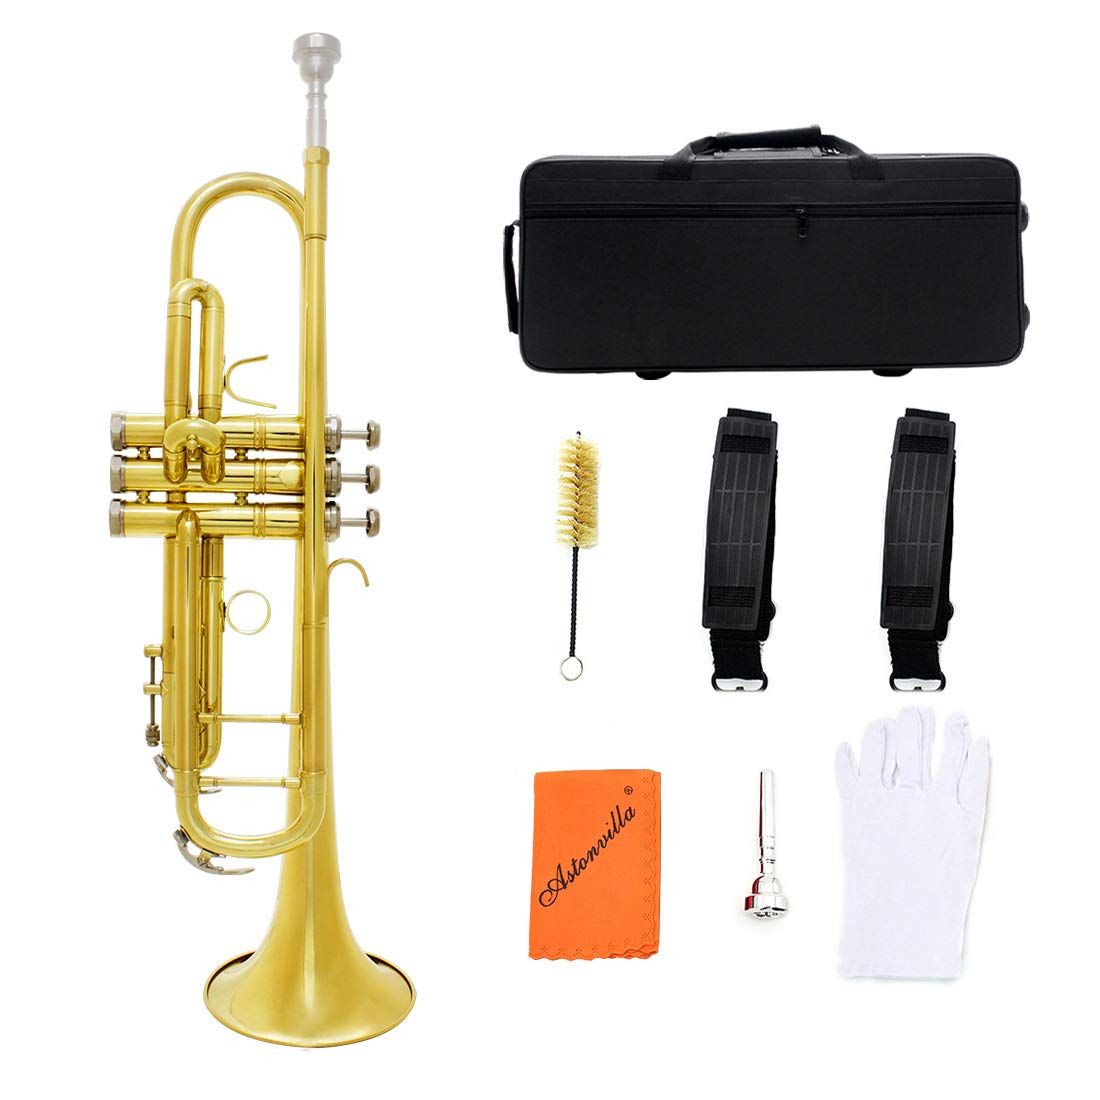 SHMYQQ Bb Trumpet Pro Case Care Kit,Nickel Plated Intermediate Double-Braced Bb Trumpet Golden Small Brass Tube Body Large Diameter Alto B Tone